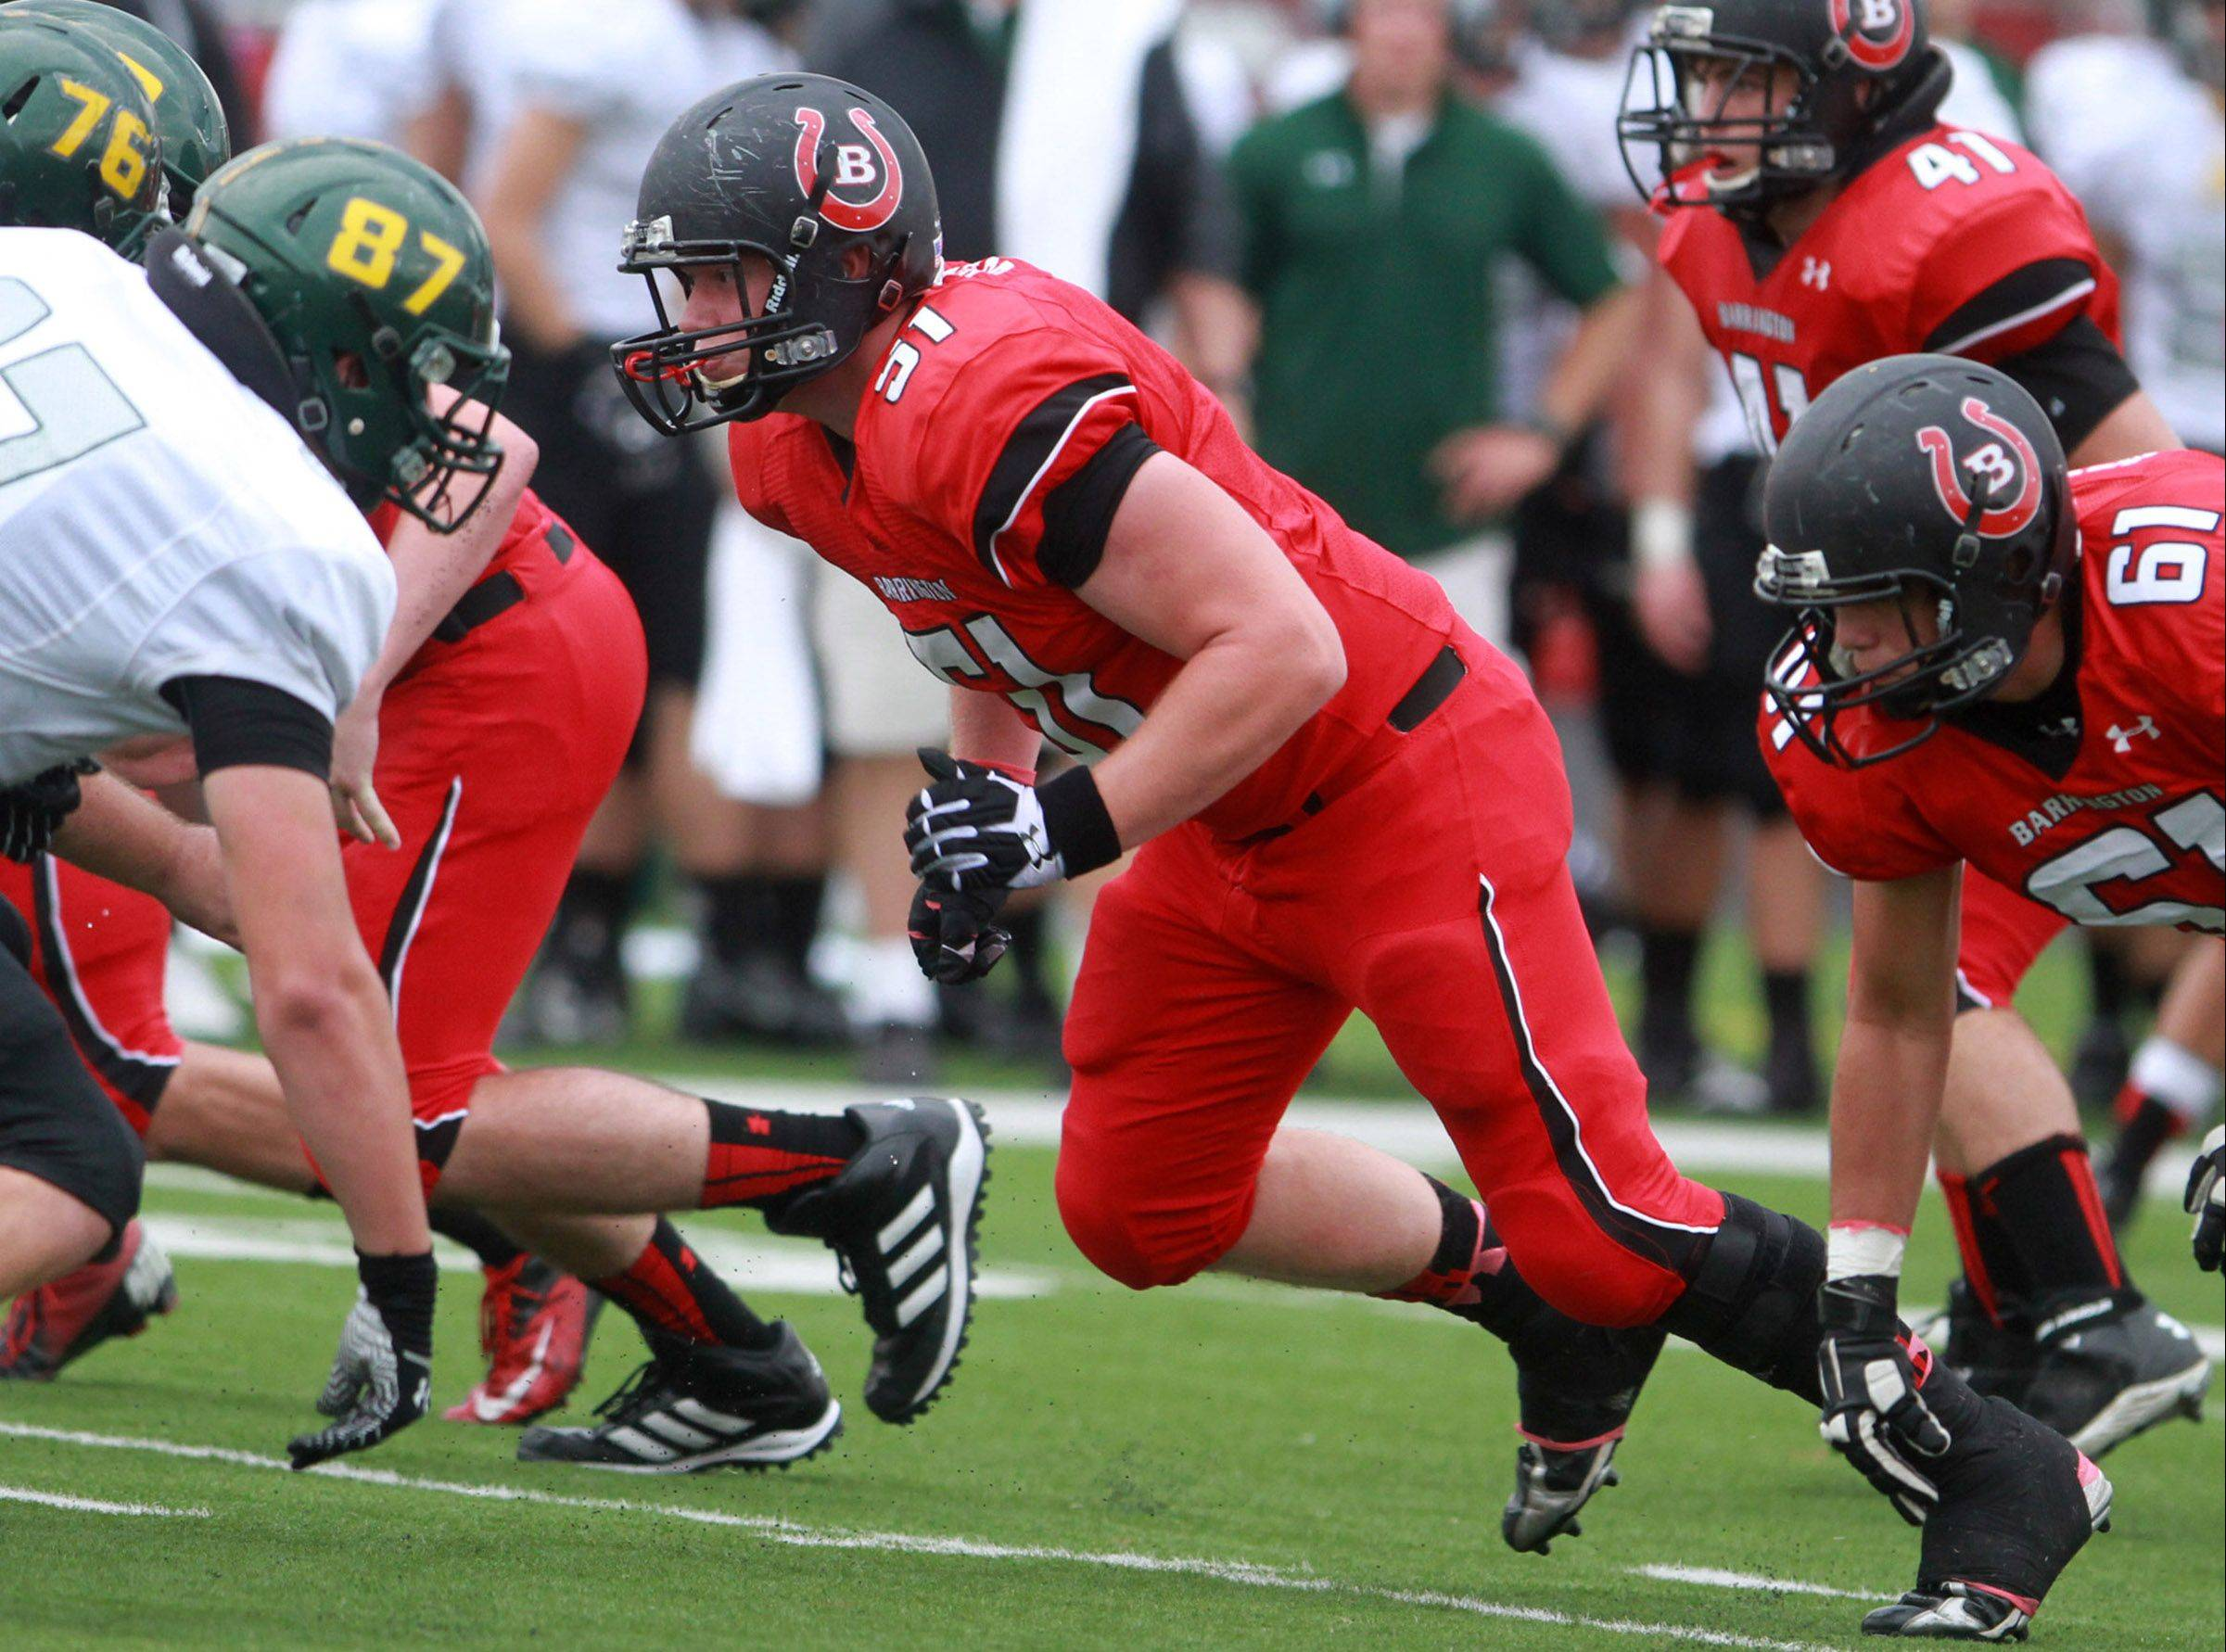 Barrington's Jacob Bulandr looks for the ball-carrier during Saturday's game against visiting Fremd.